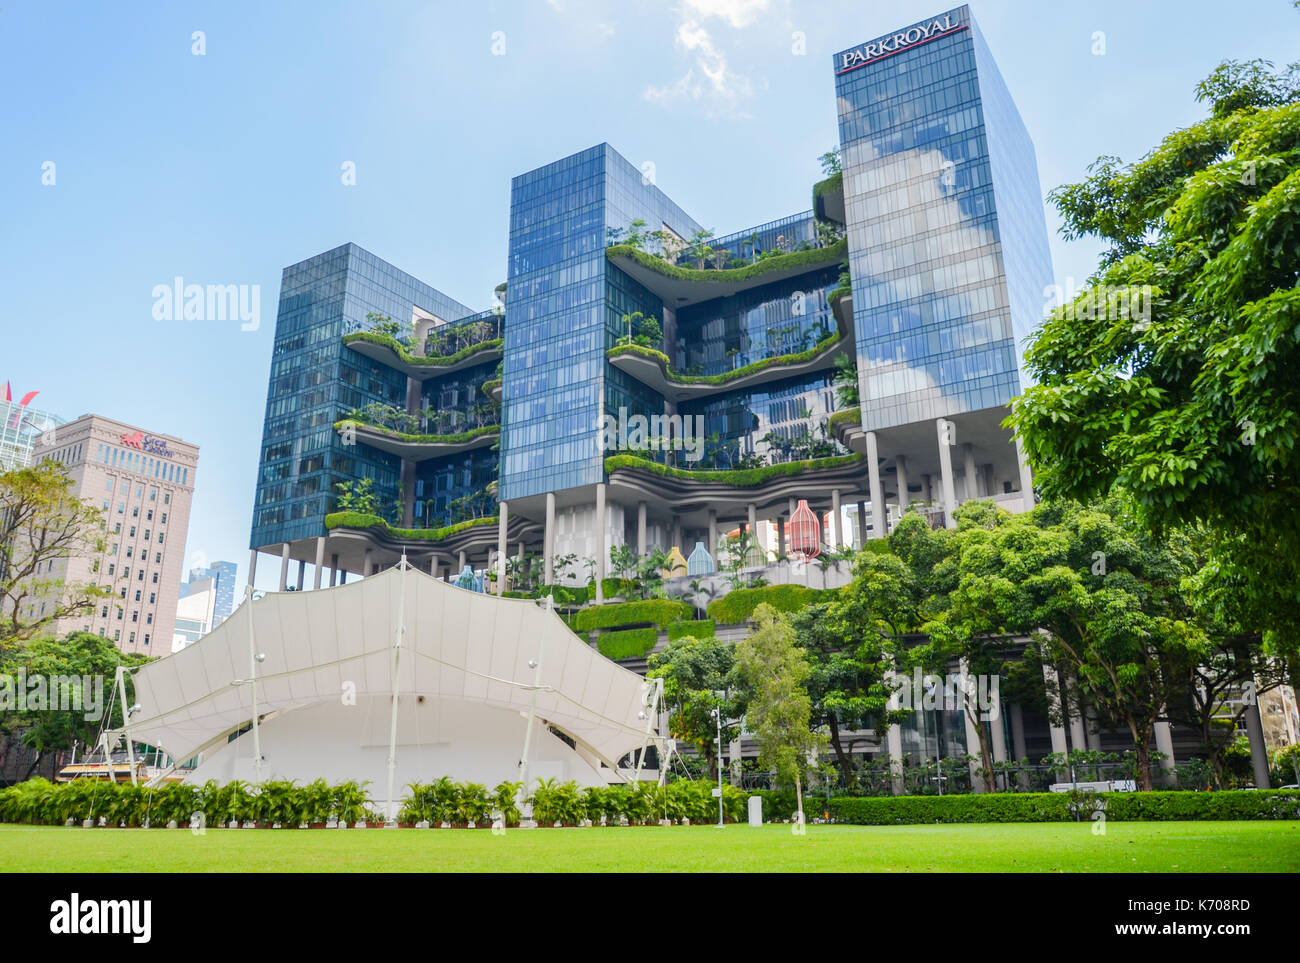 Speakers` Corner in Singapore, the area where open-air public speaking, debate and discussion are allowed. Stock Photo